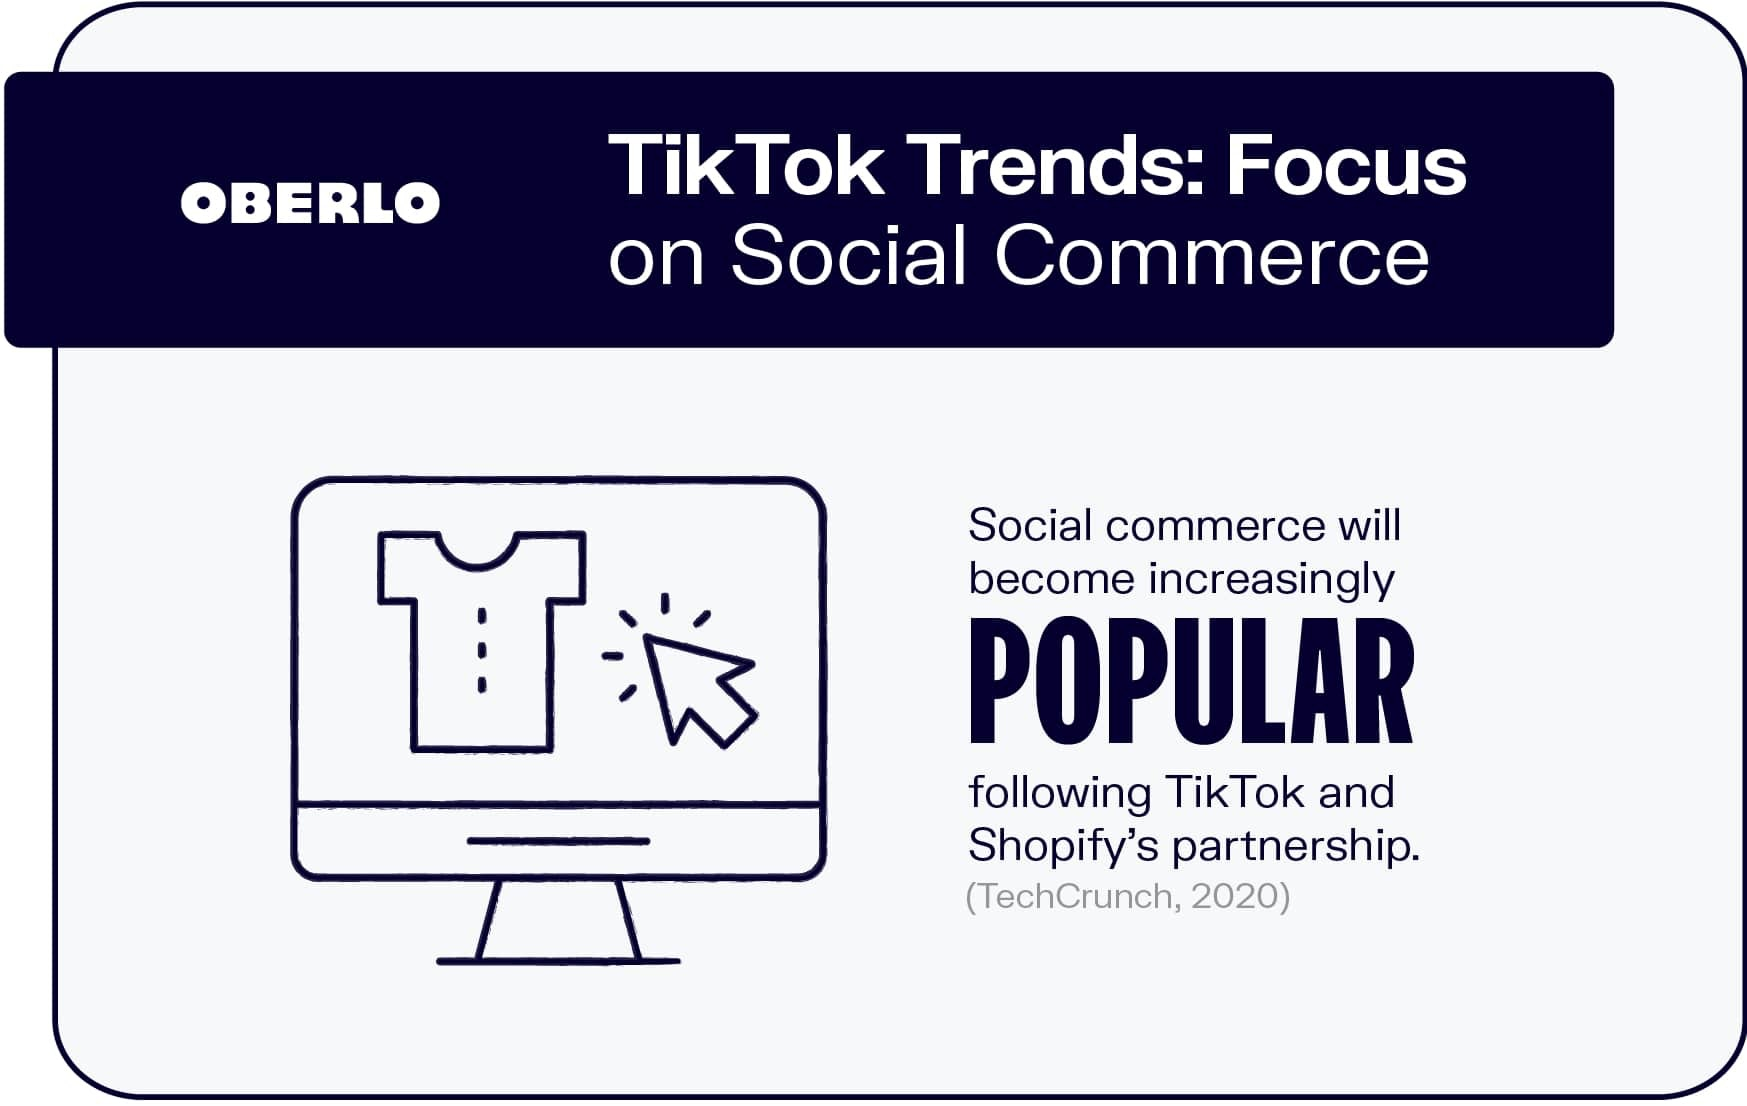 TikTok Trends: Focus on Social Commerce